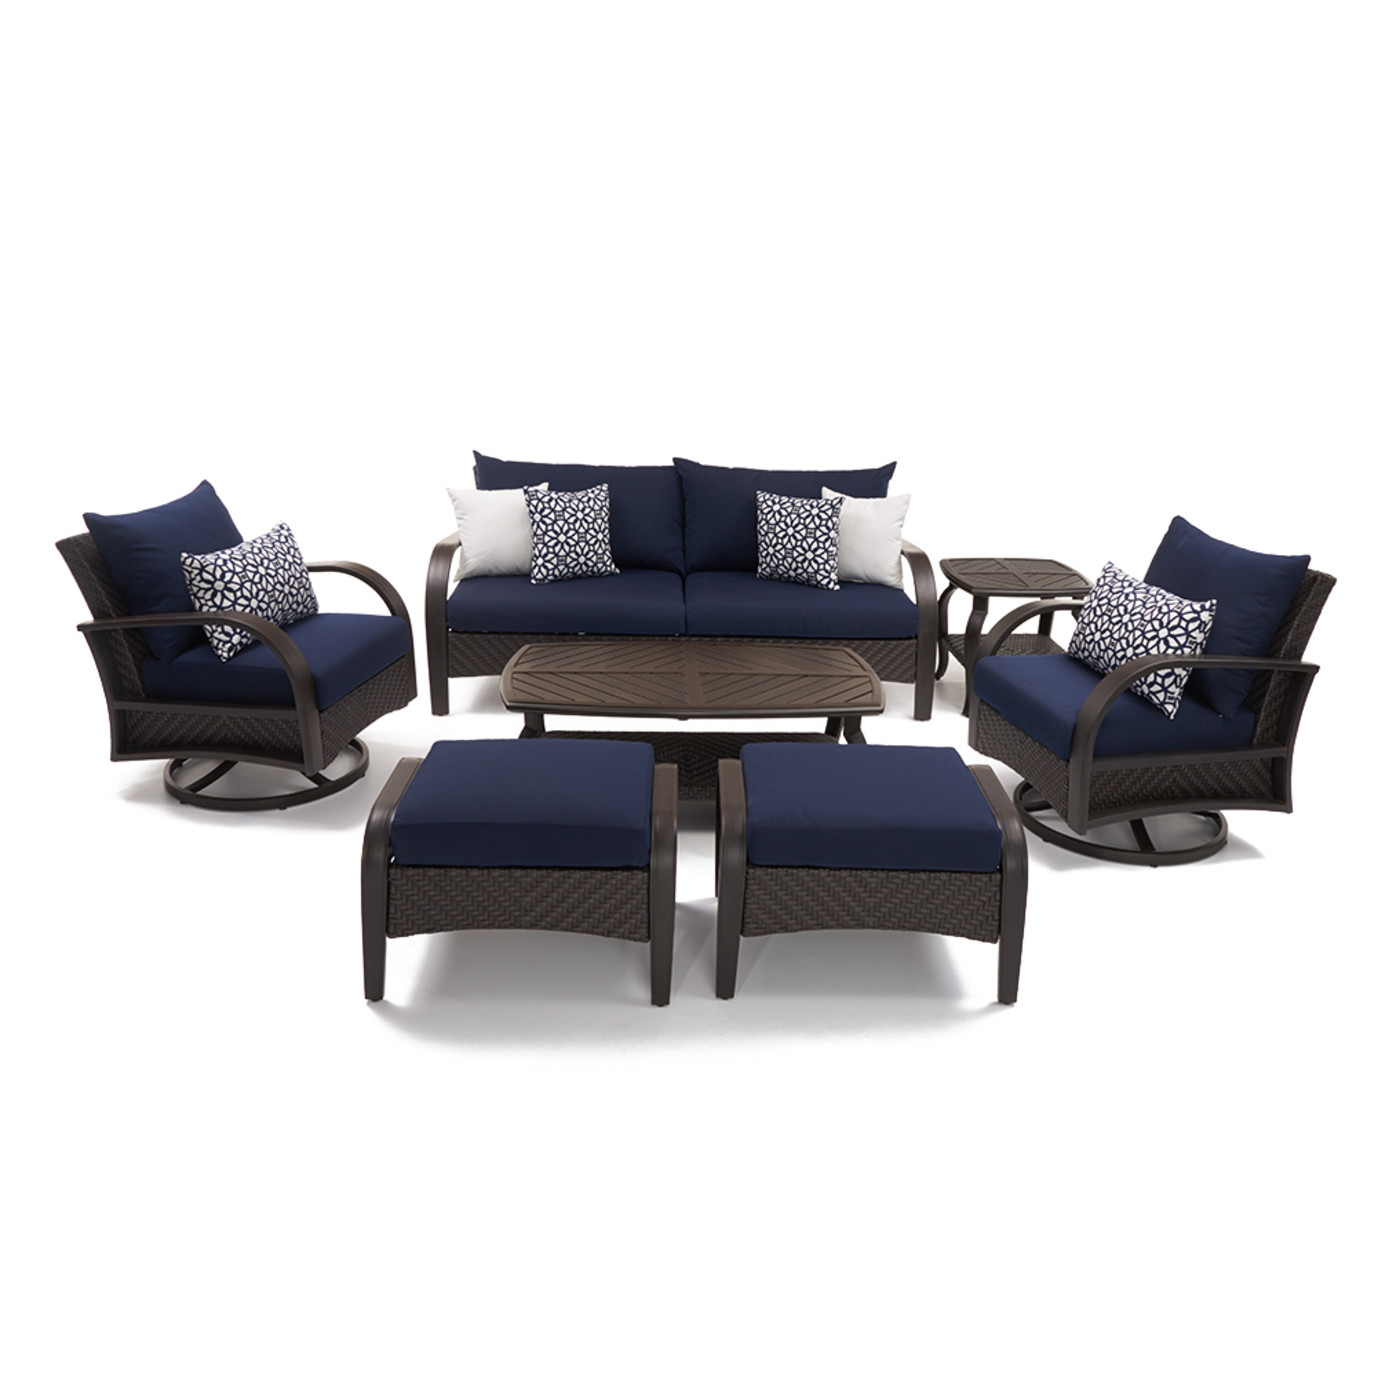 Barcelo™ 7pc Motion Club Deep Seating Set - Navy Blue